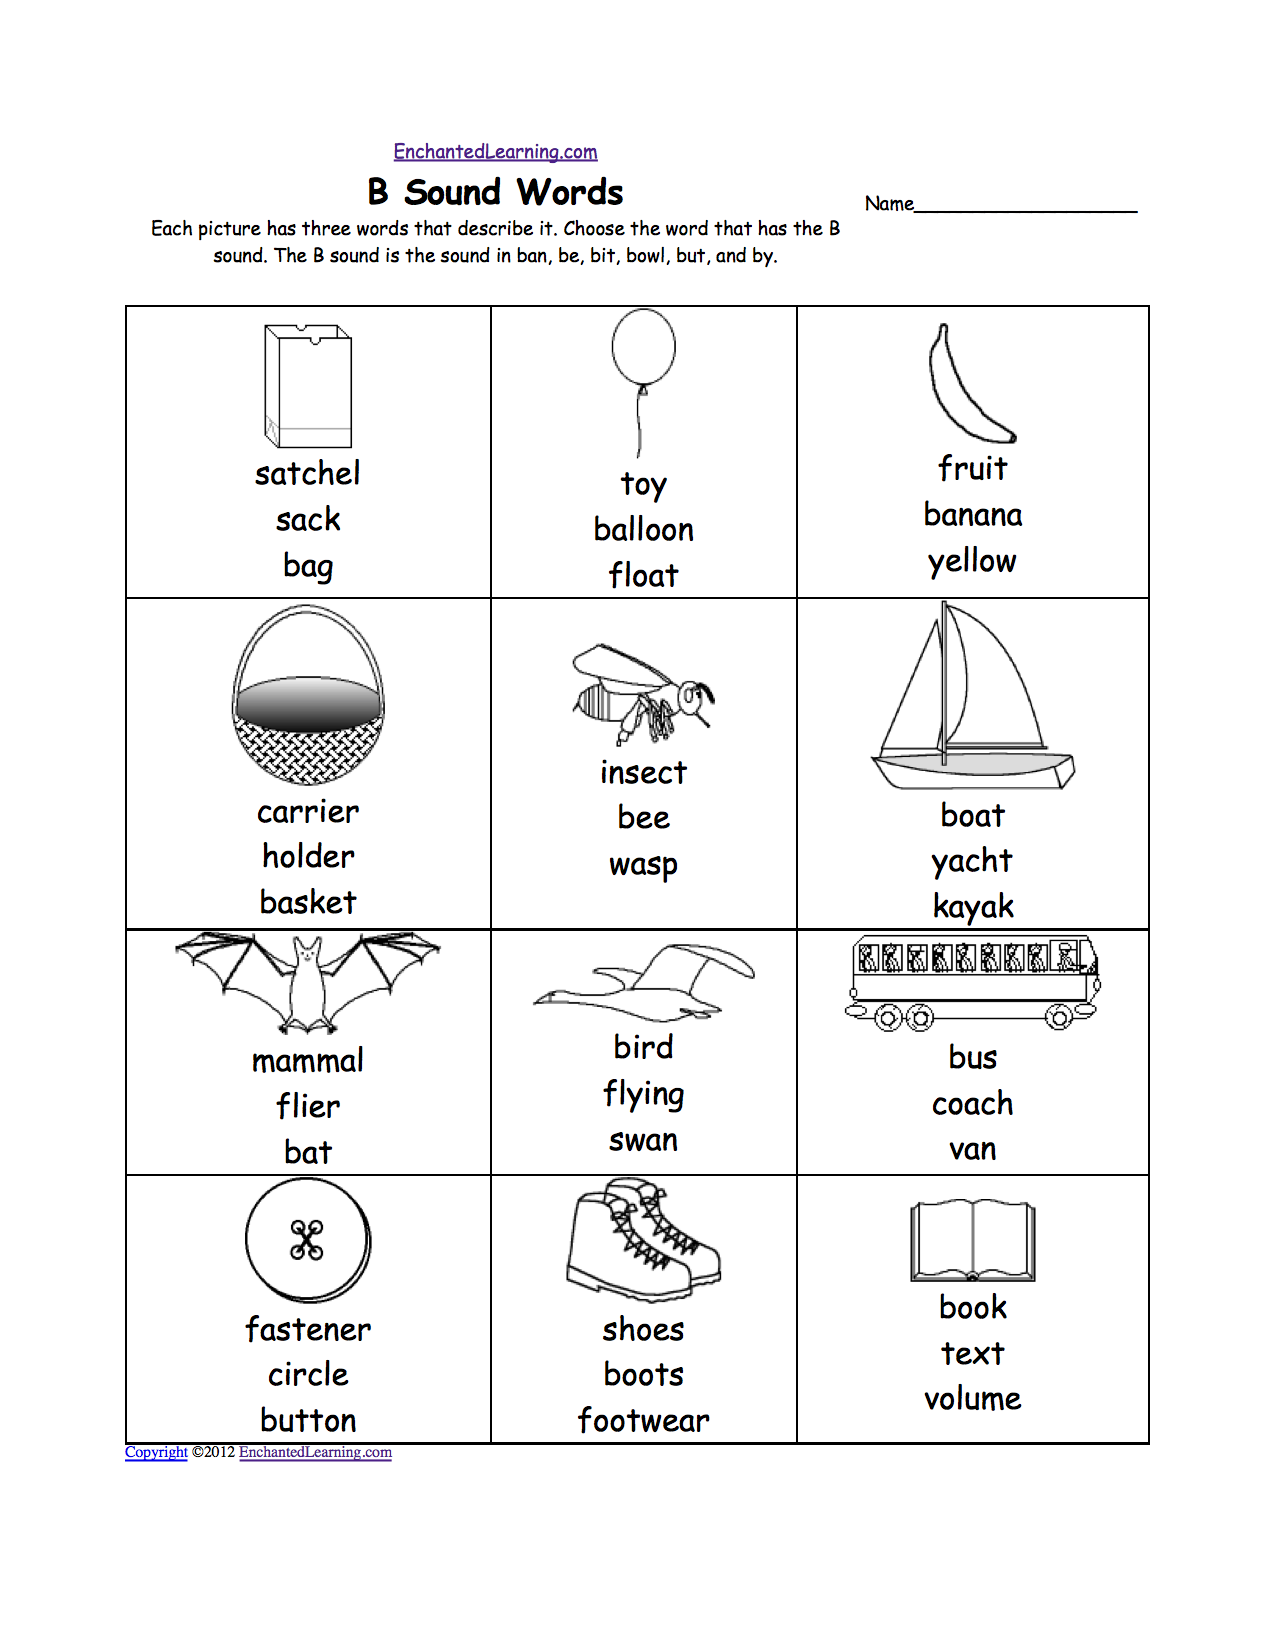 Weirdmailus  Marvellous Phonics Worksheets Multiple Choice Worksheets To Print  With Extraordinary Quotbquot Sound Phonics Worksheet Multiple Choice Each Picture Has Three Words That Describe It Choose The Word That Has A Quotbquot Sound The Quotbquot Sound Is The Sound  With Delectable Baby Shower Games Printable Worksheets Free Also Measuring And Drawing Angles Worksheet In Addition Owl Moon Worksheets And Middle School Ela Worksheets As Well As Order Decimals Worksheet Additionally Rd Grade Shapes Worksheets From Enchantedlearningcom With Weirdmailus  Extraordinary Phonics Worksheets Multiple Choice Worksheets To Print  With Delectable Quotbquot Sound Phonics Worksheet Multiple Choice Each Picture Has Three Words That Describe It Choose The Word That Has A Quotbquot Sound The Quotbquot Sound Is The Sound  And Marvellous Baby Shower Games Printable Worksheets Free Also Measuring And Drawing Angles Worksheet In Addition Owl Moon Worksheets From Enchantedlearningcom